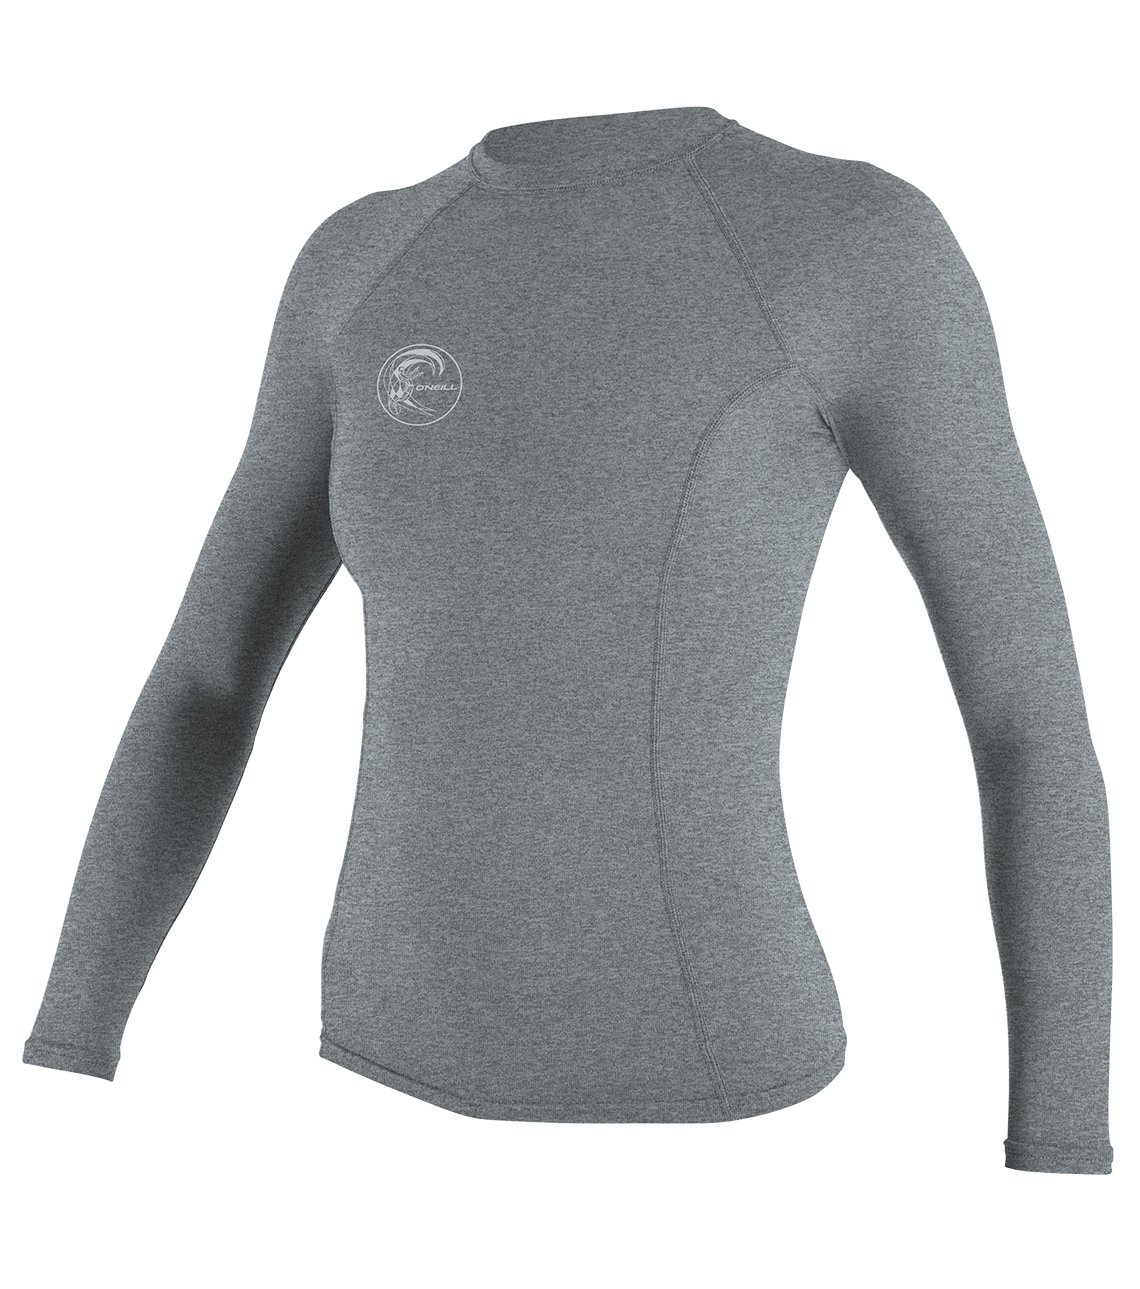 O'Neill Wetsuits Women's Hybrid UPF 50+ Long Sleeve Rash Guard, Cool Grey, X-Small by O'Neill Wetsuits